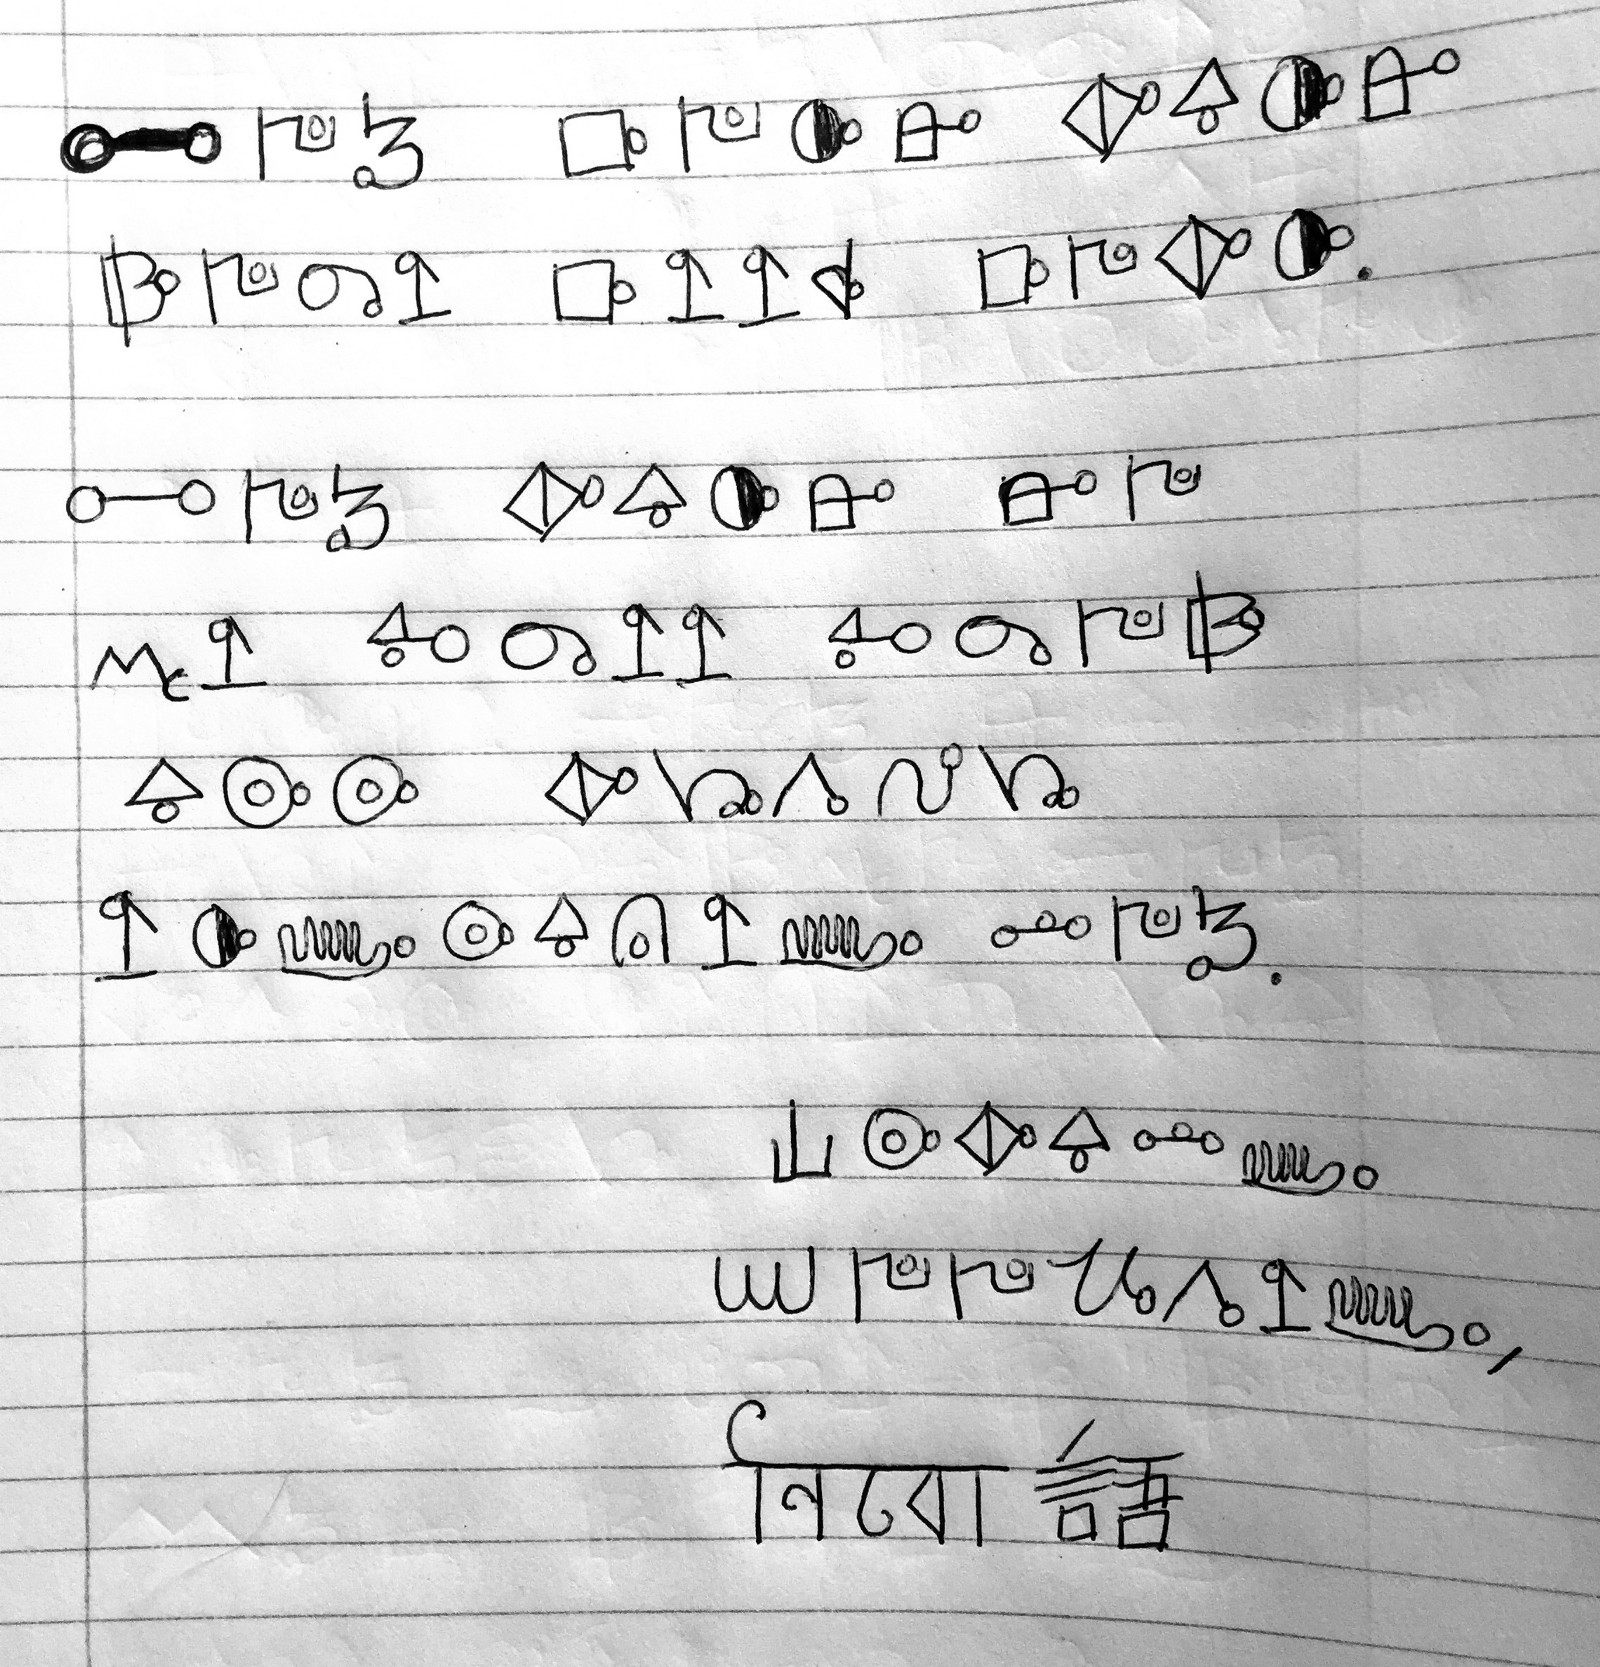 Can You Solve This Cipher? If So, $750 EOS Account is Yours - By